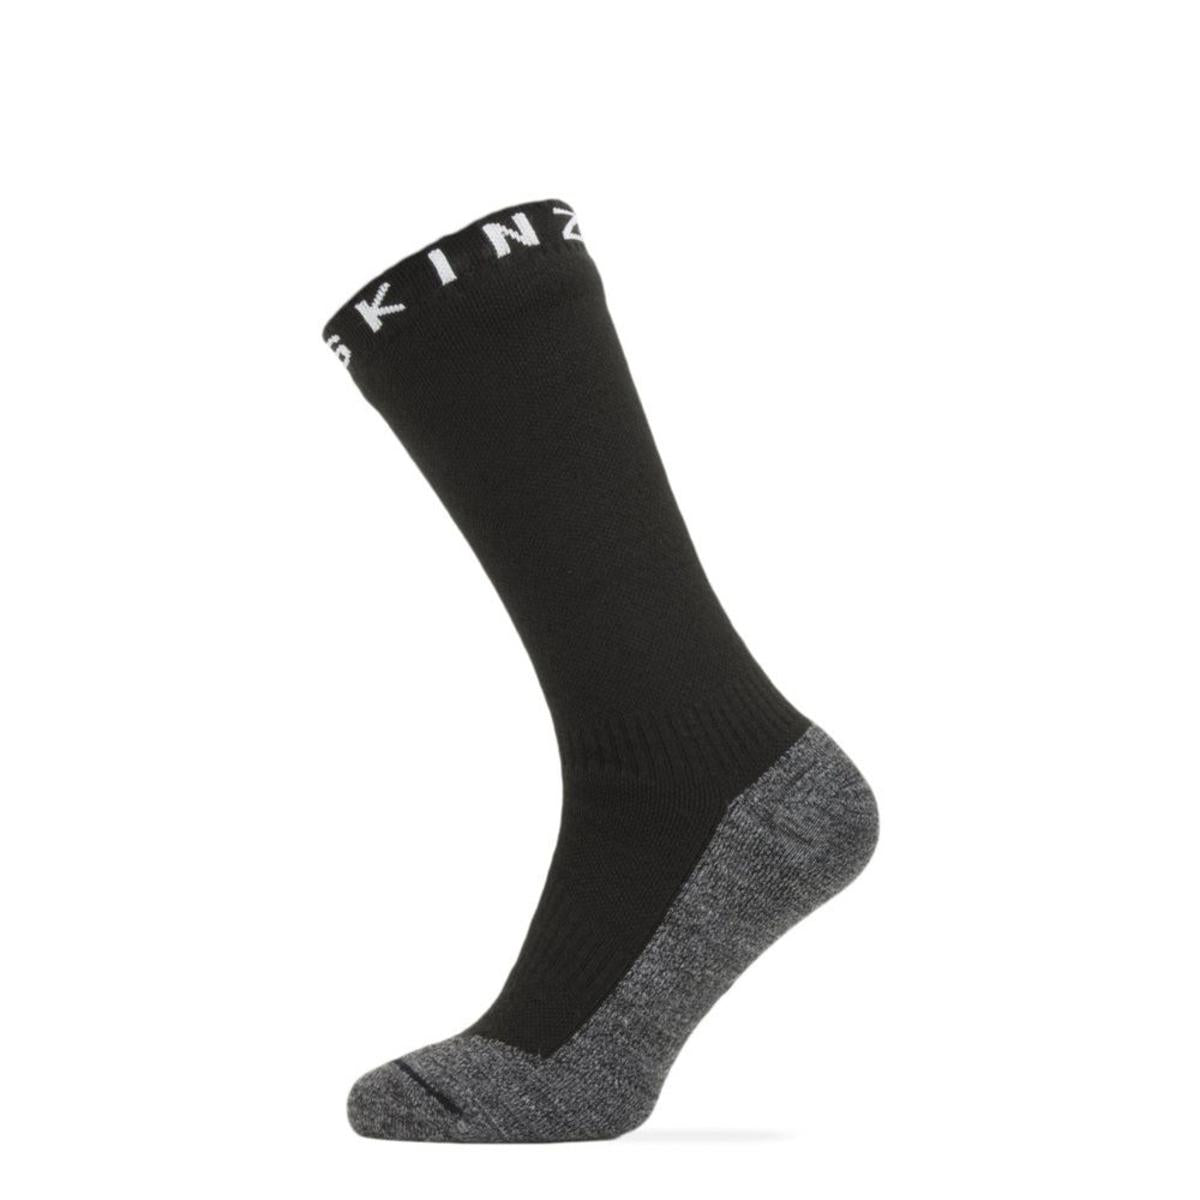 SealSkinz Men's Waterproof Warm Weather Soft Touch Mid Length Socks